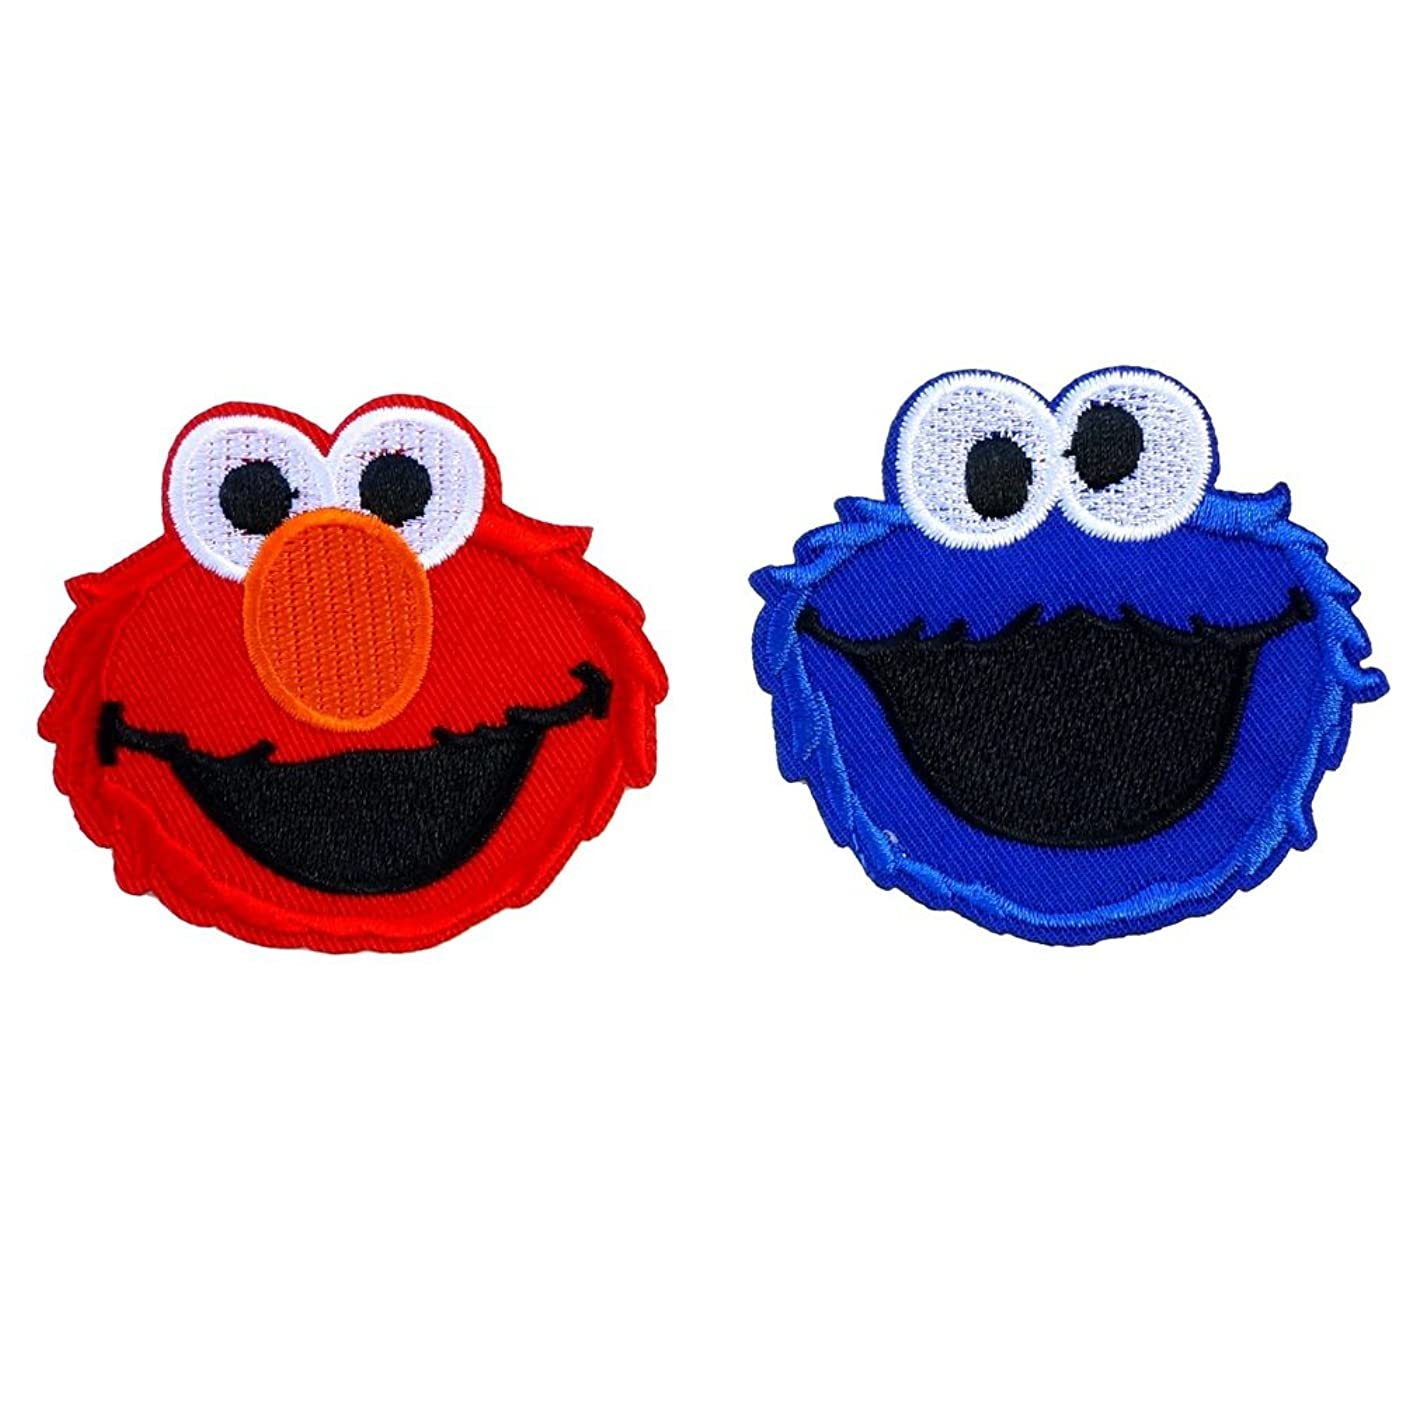 Cookie Monster Sesame Street Elmo Cartoon Iron on Patch Logo Fabric Applique skokkfzzame139